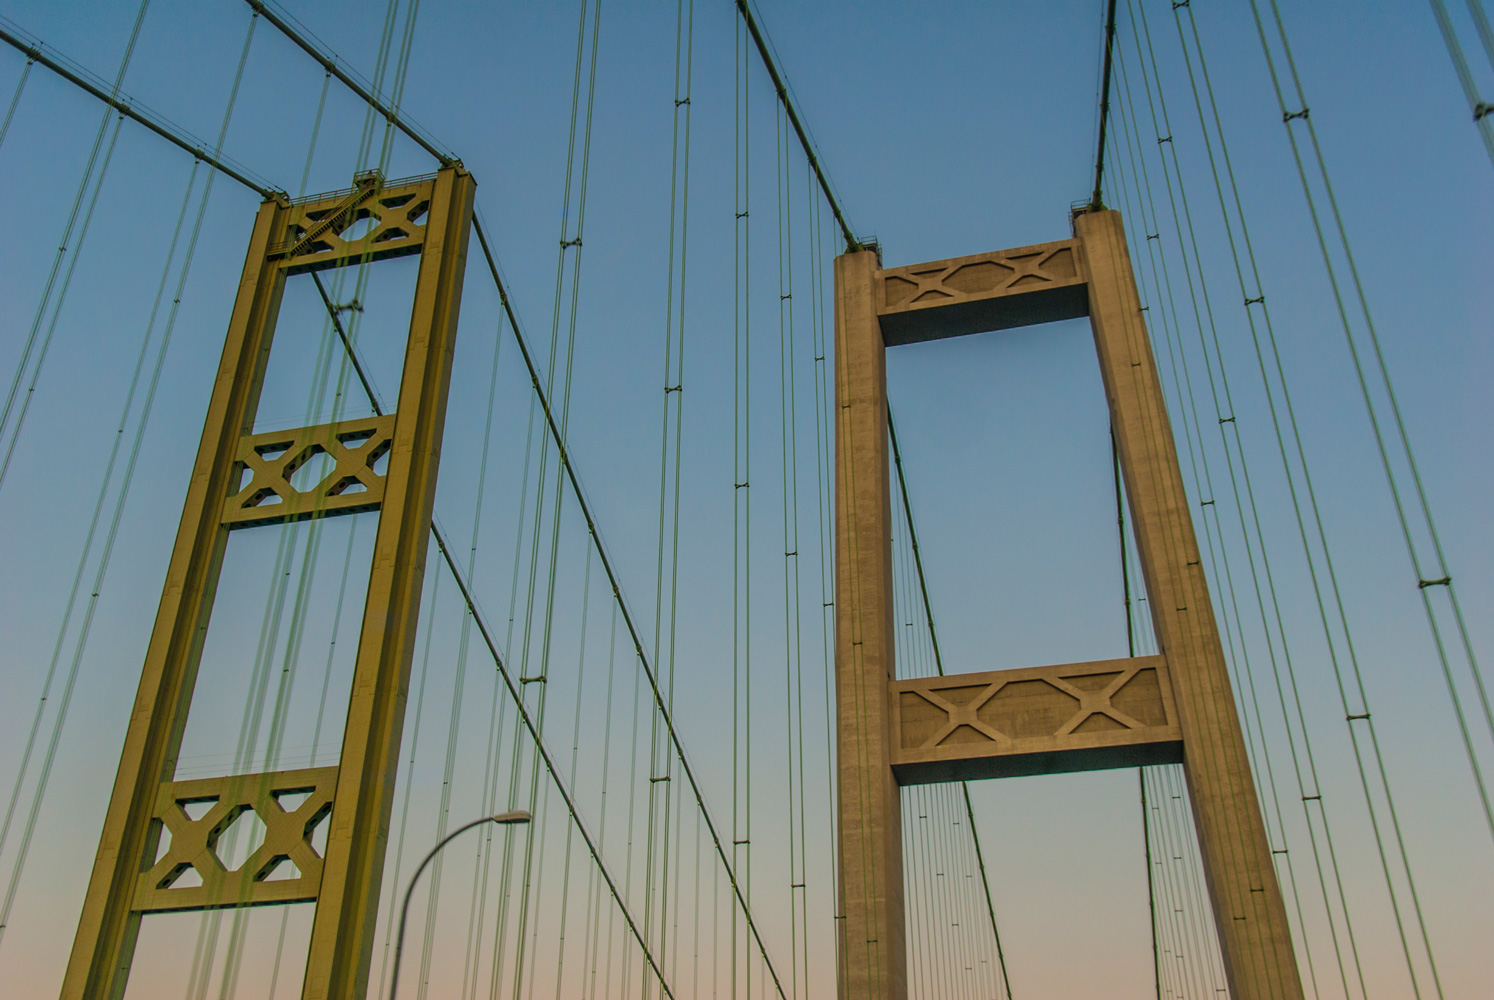 Image: Tacoma Narrows Bridge